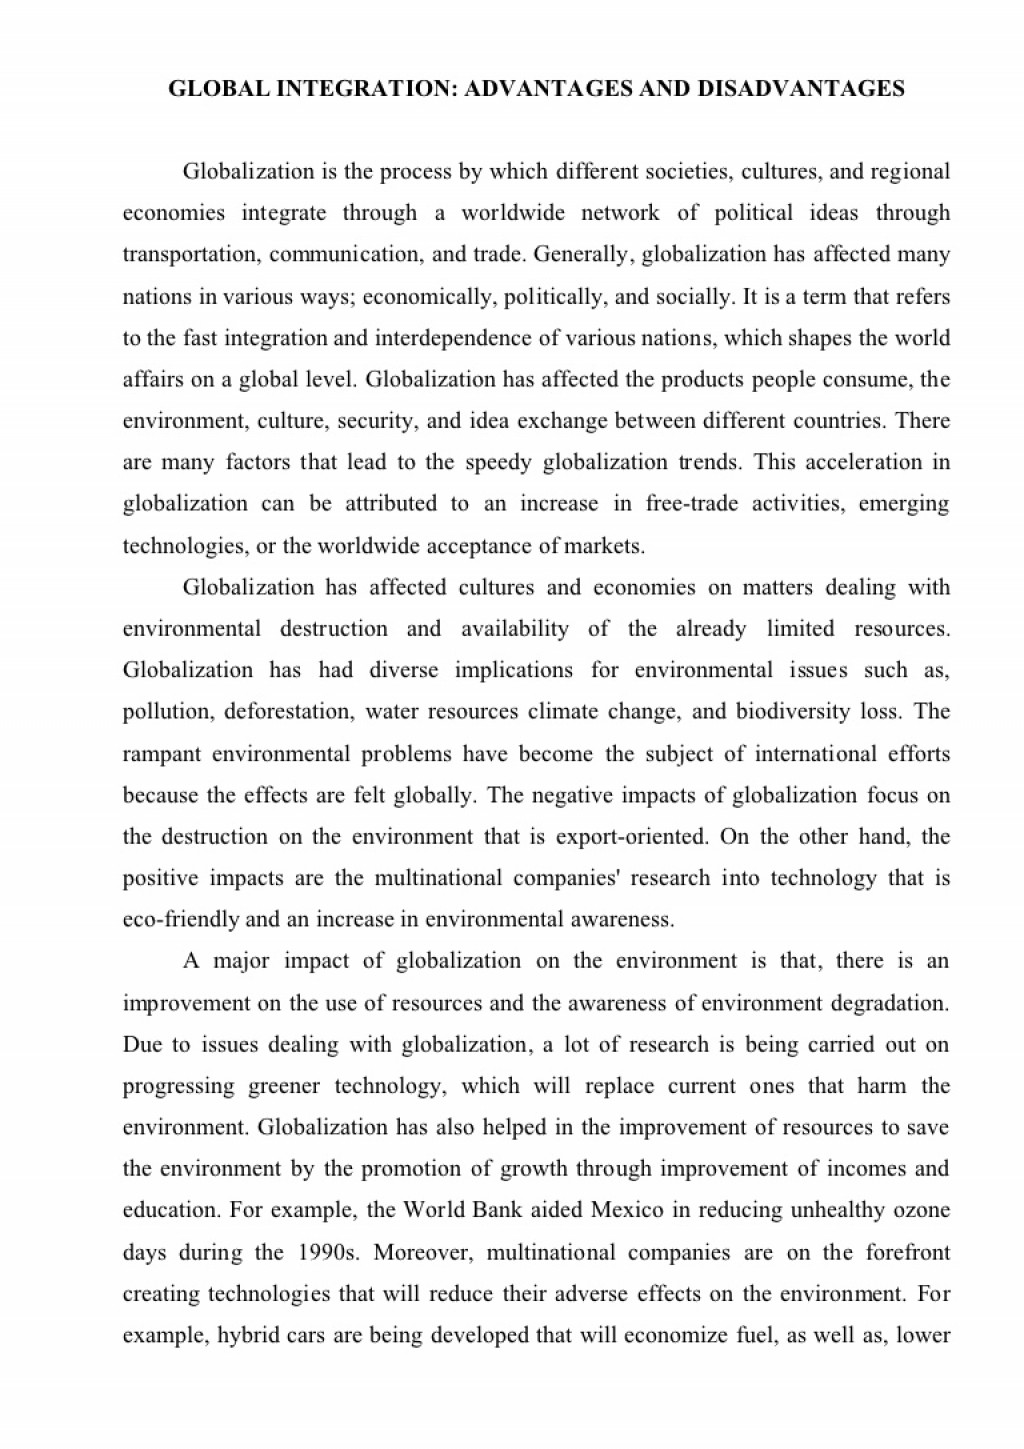 021 Essayglobalization Phpapp02 Thumbnail Essay Example Advantage And Disadvantage Of Shocking Science Advantages Disadvantages With Quotes In Marathi Tamil Language Large